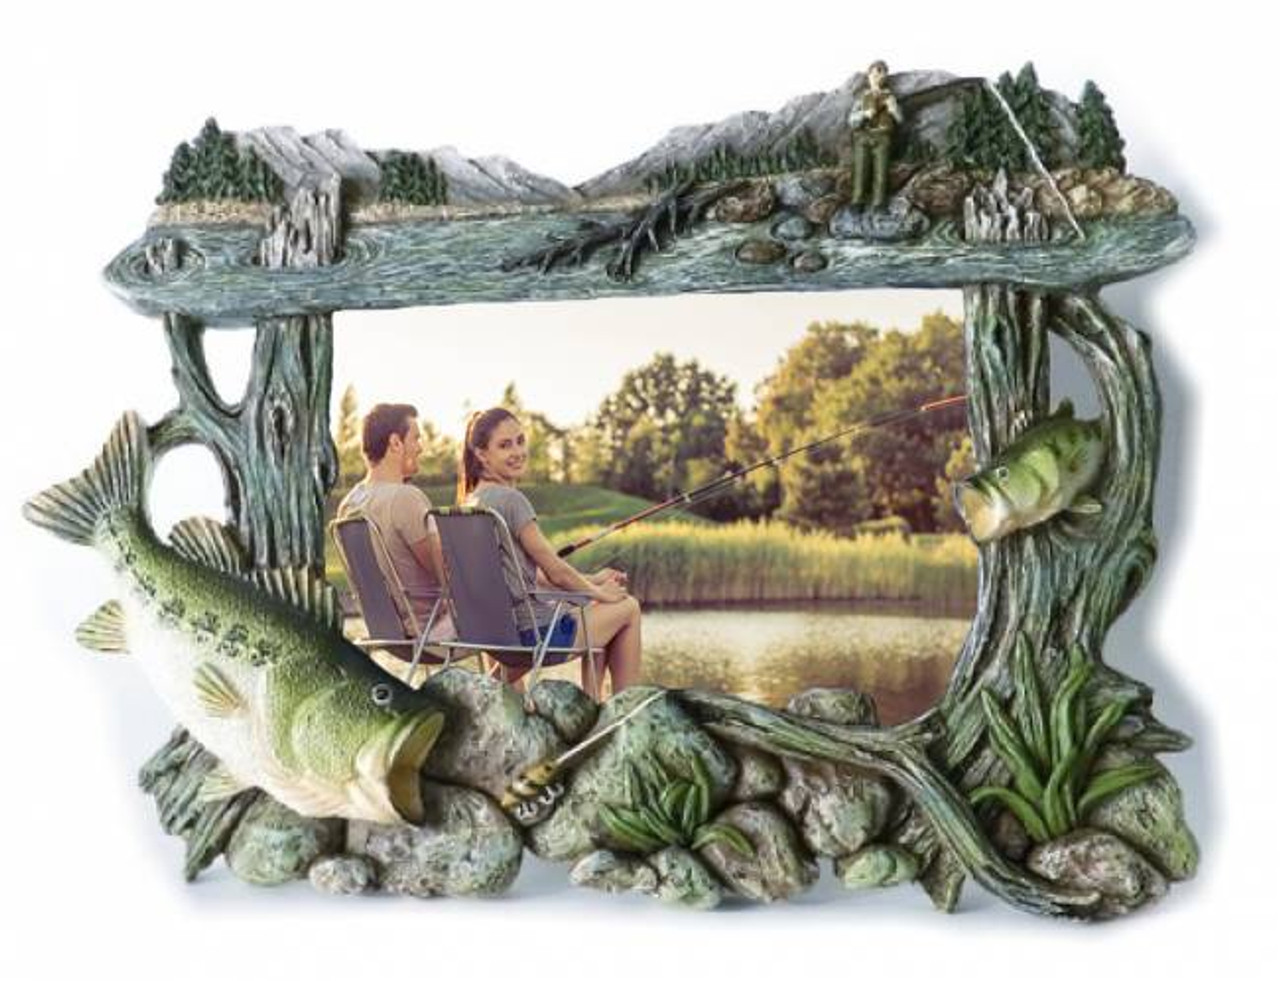 Sculpted bass fishing 4x6 picture frame for Fishing picture frame